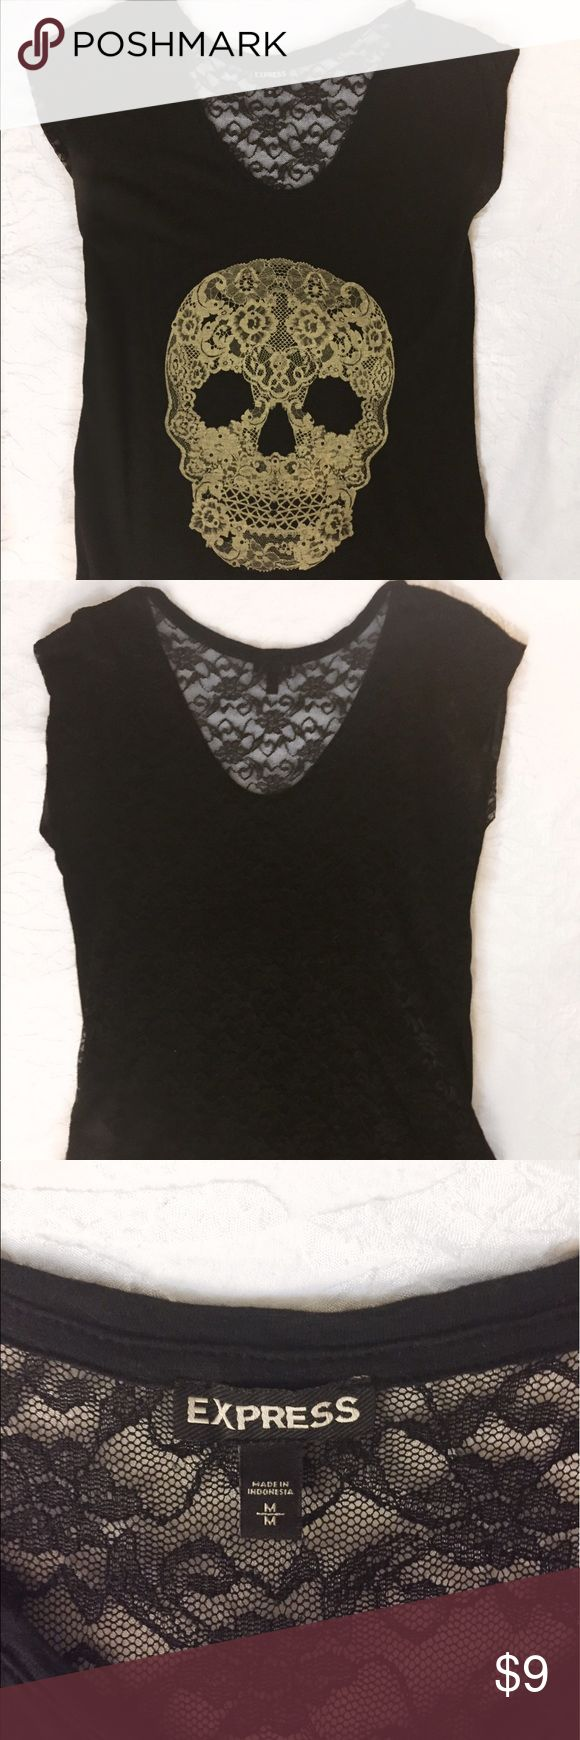 Express Graphic Tee Woman's Black Lace Skull Top This is a graphic tee from express. The entire back is see-through lace. The front has a beige lace skull with some small studs attached. Loose fit. Express Tops Tees - Short Sleeve